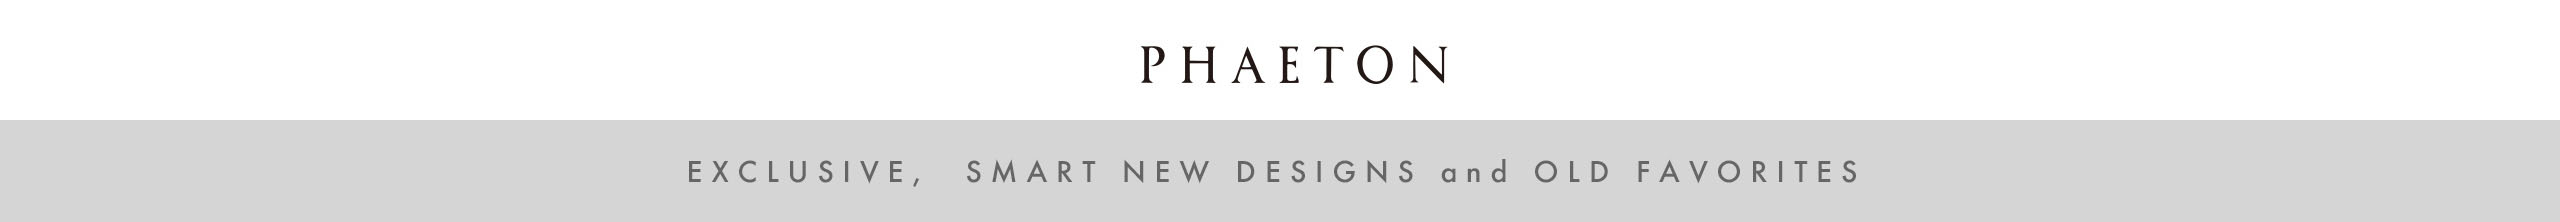 PHAETON SMART CLOTHES -ECLUSIVE, SMART NEW DESIGNS and OLD FAVORITES-